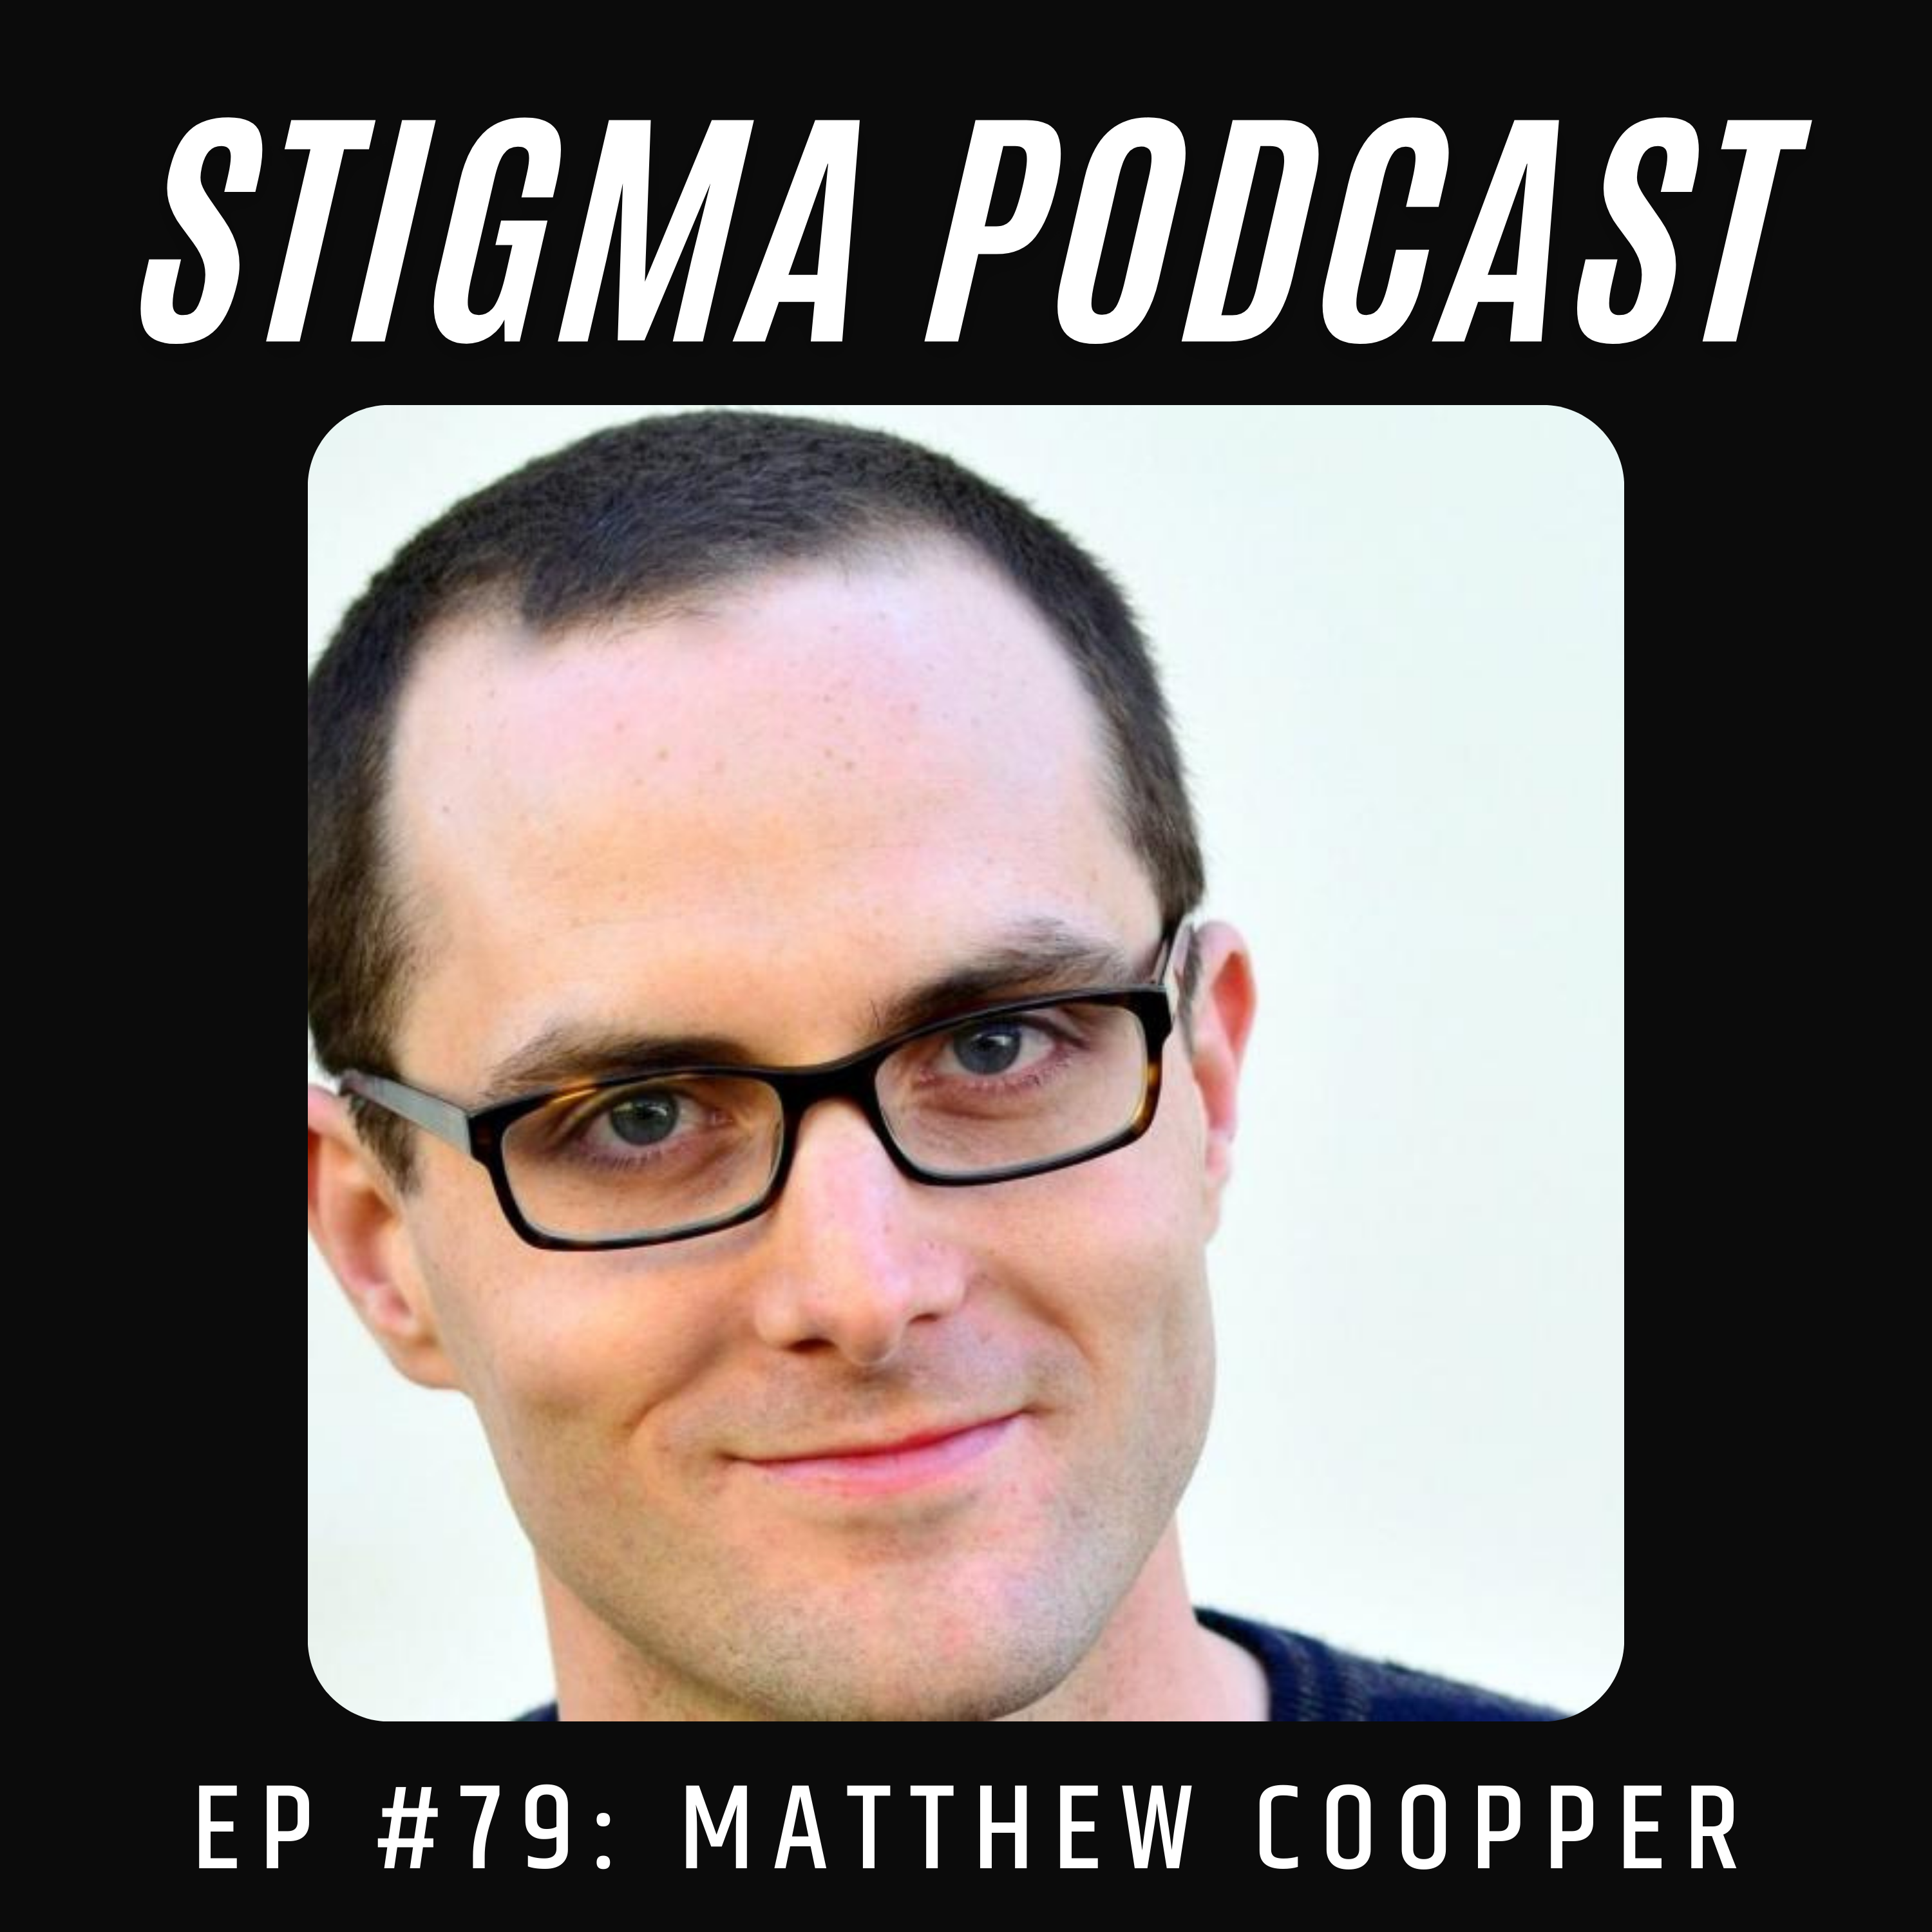 Stigma Podcast - Mental Health - #79 - Matthew Cooper on Stepping Down as CEO for His Mental Health